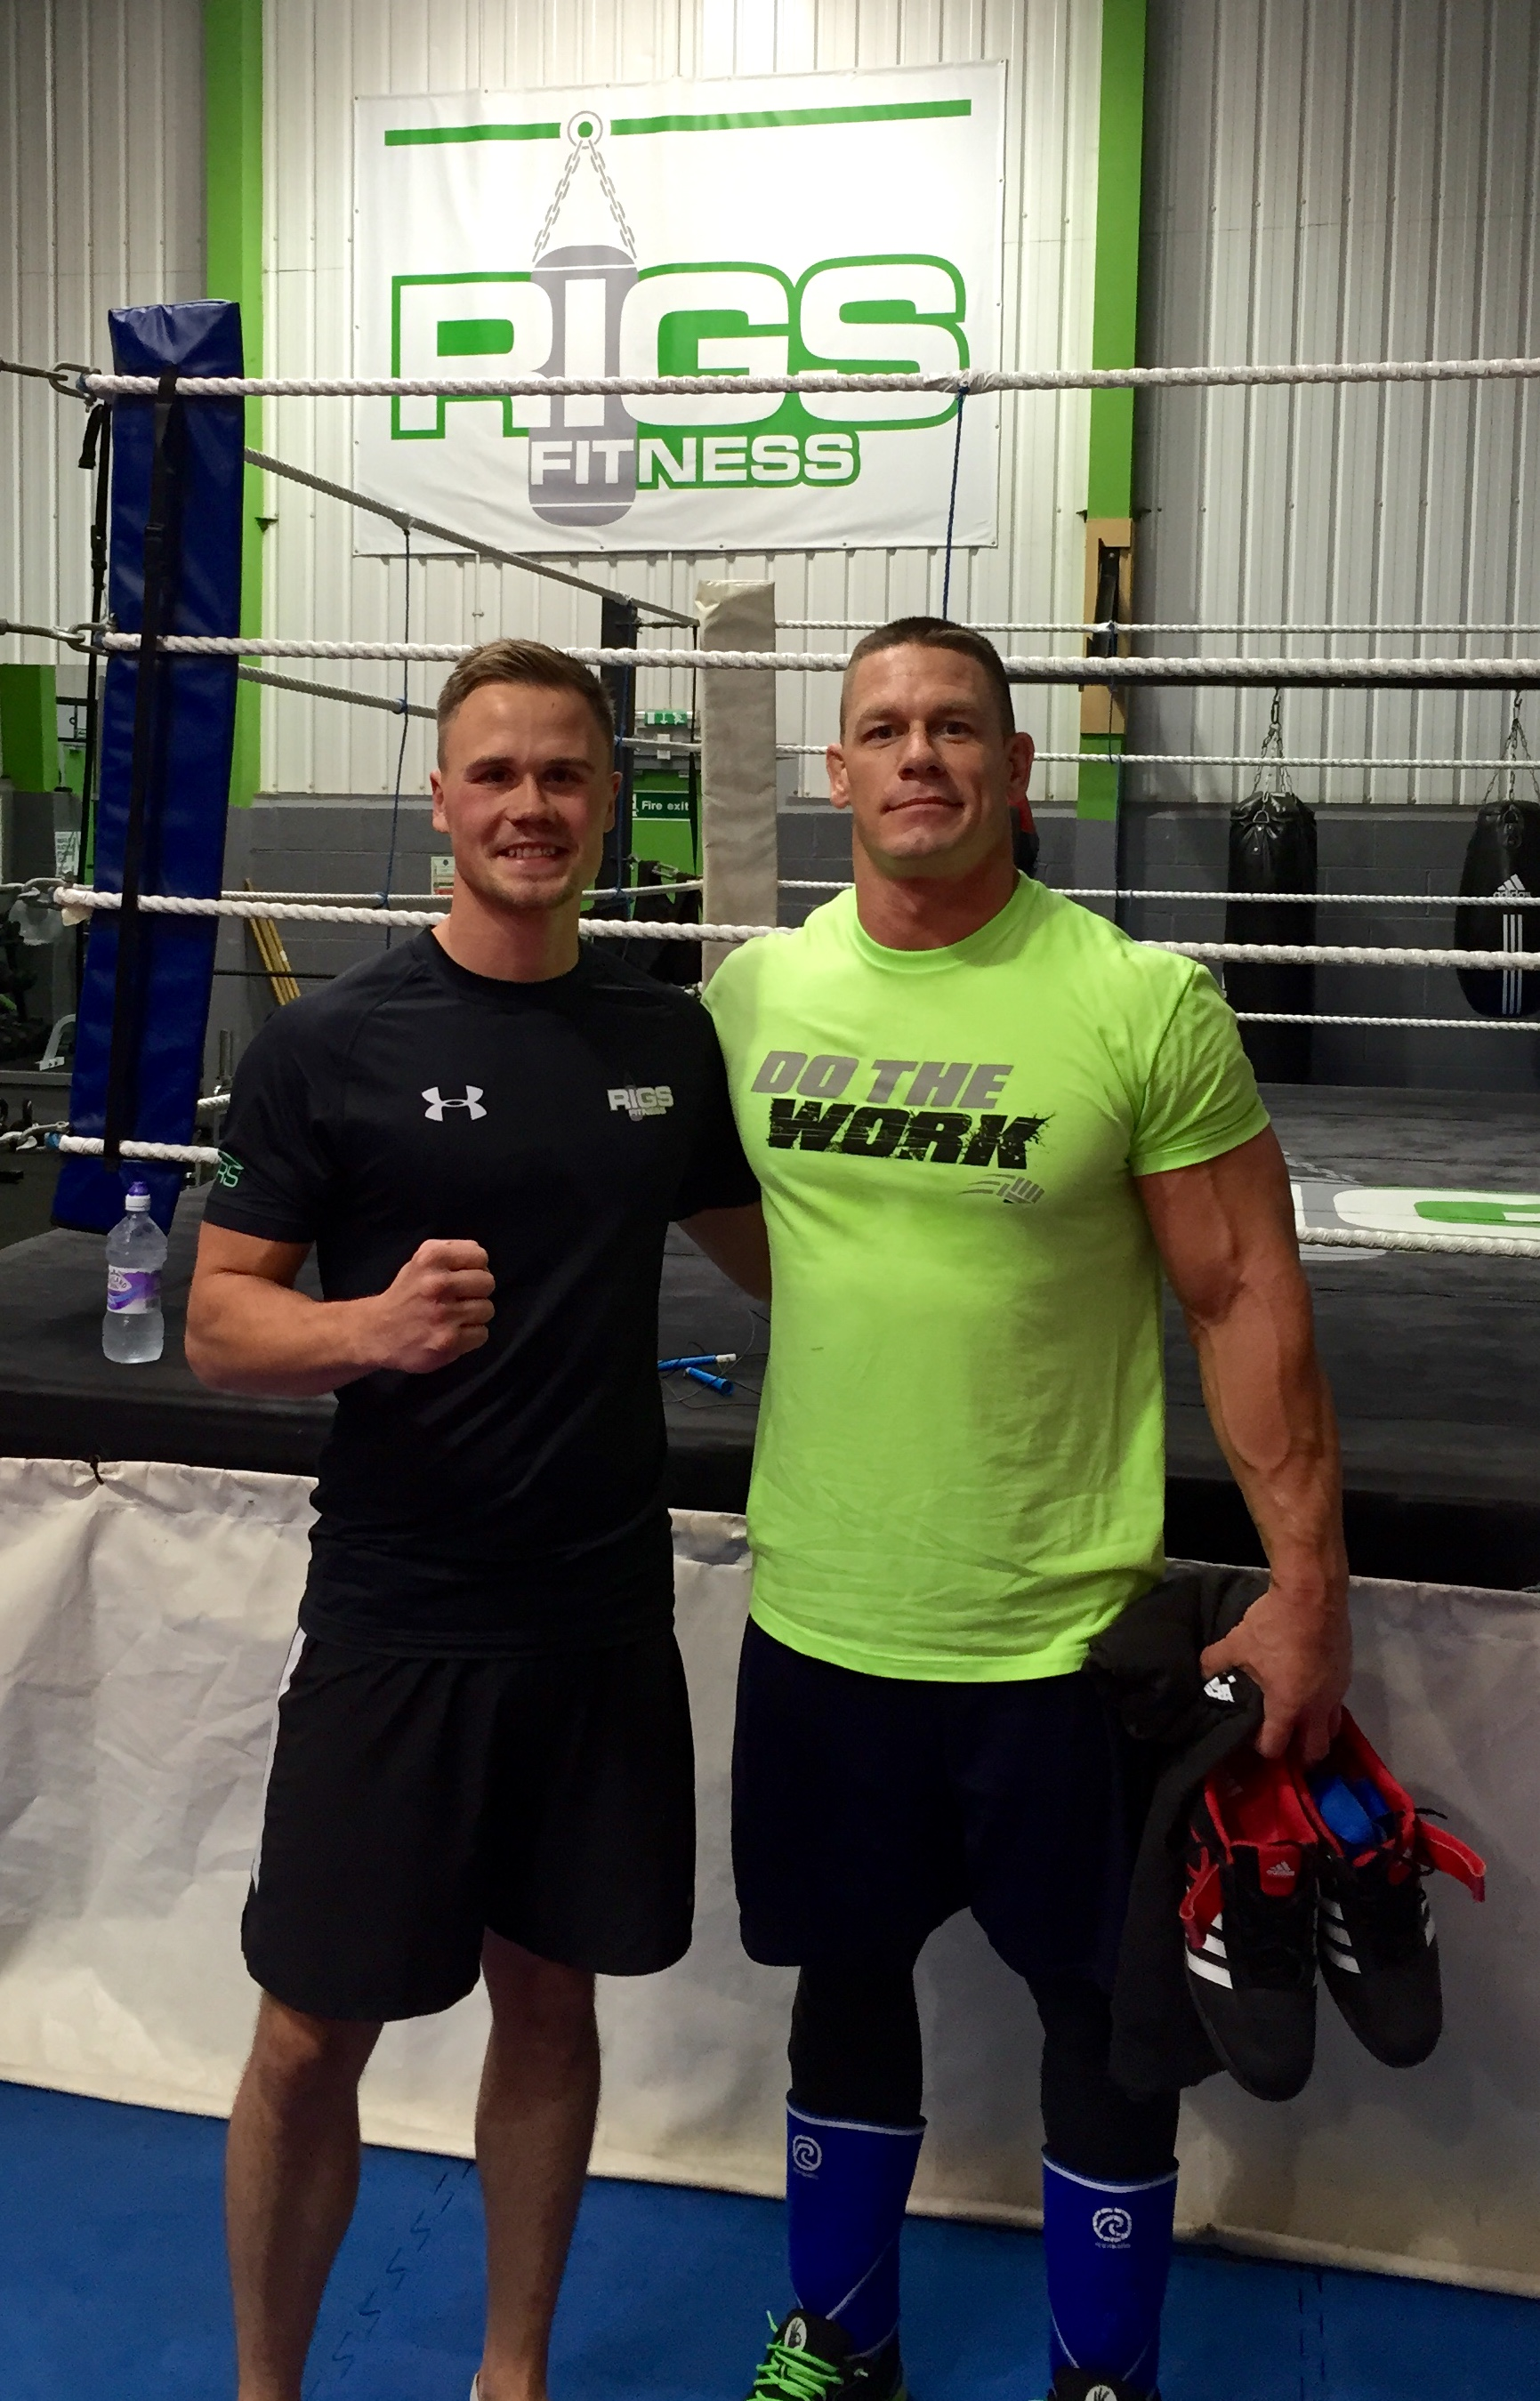 Wwe superstars choose rigs fitness pictures - John cena gym image ...